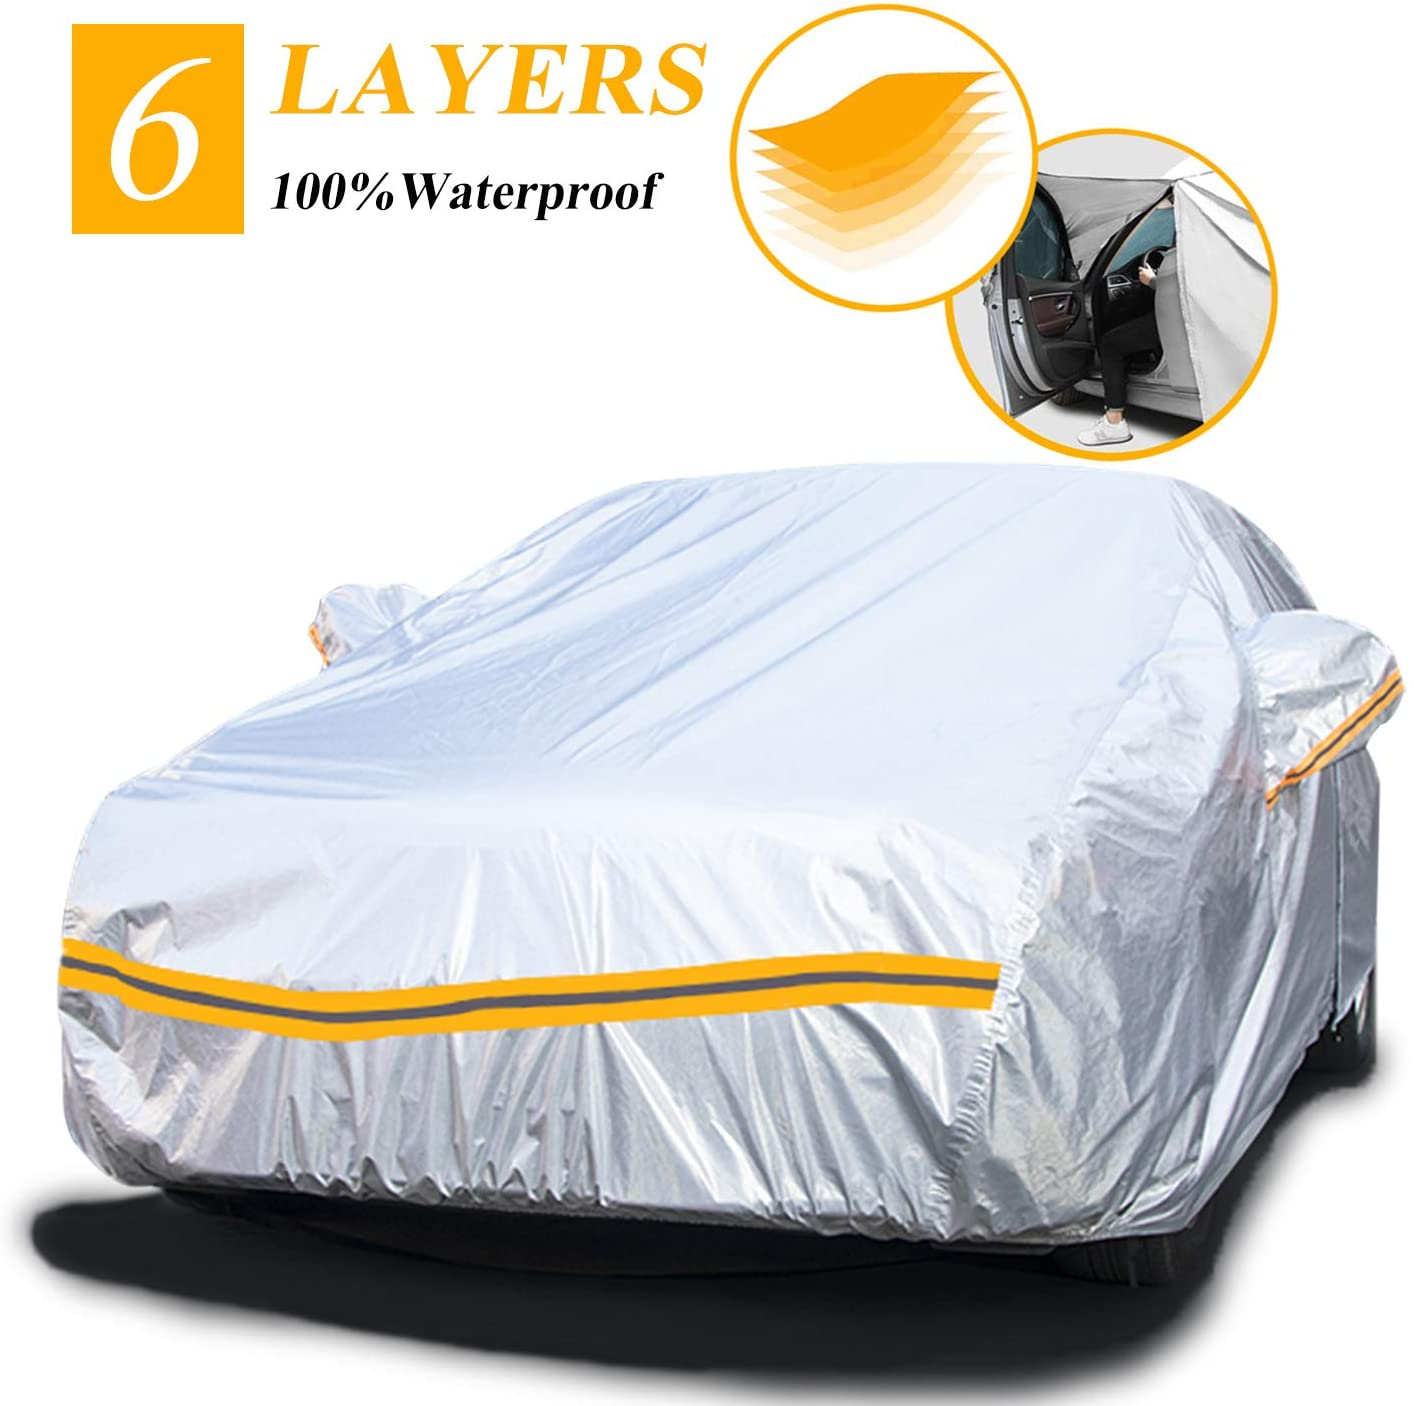 "Autsop Car Cover Waterproof All Weather,6 Layers Car Cover for Automobiles Outdoor Full Cover Hail UV Protection with Zipper, Universal A3-3XXL(Fits Sedan 194"" to 208"")"